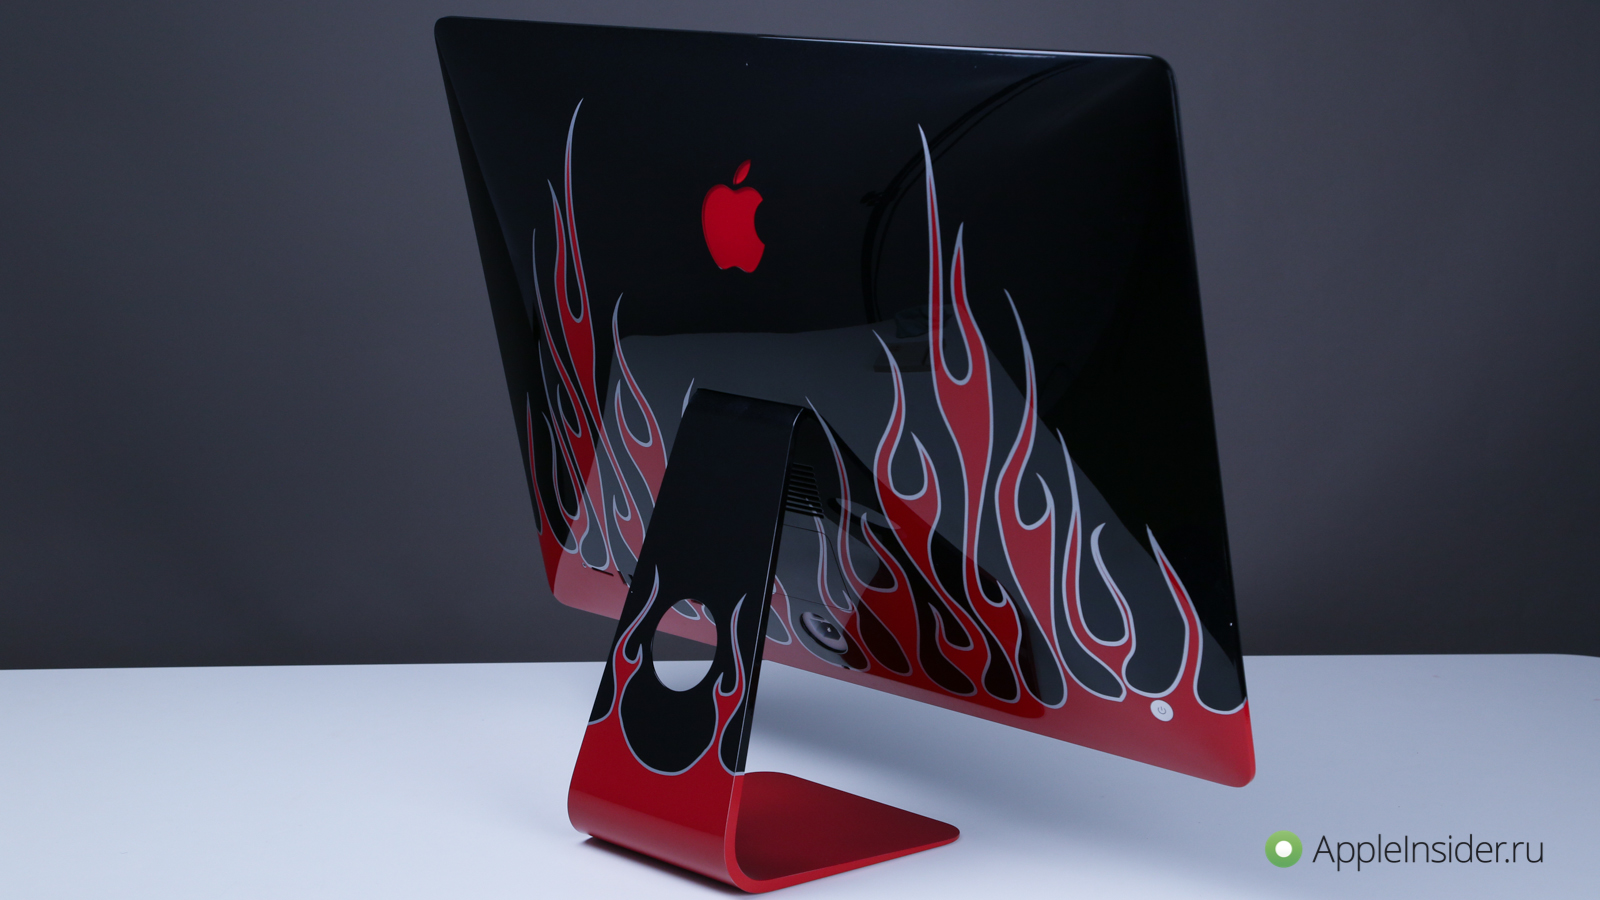 Much does it cost to paint the iMac?